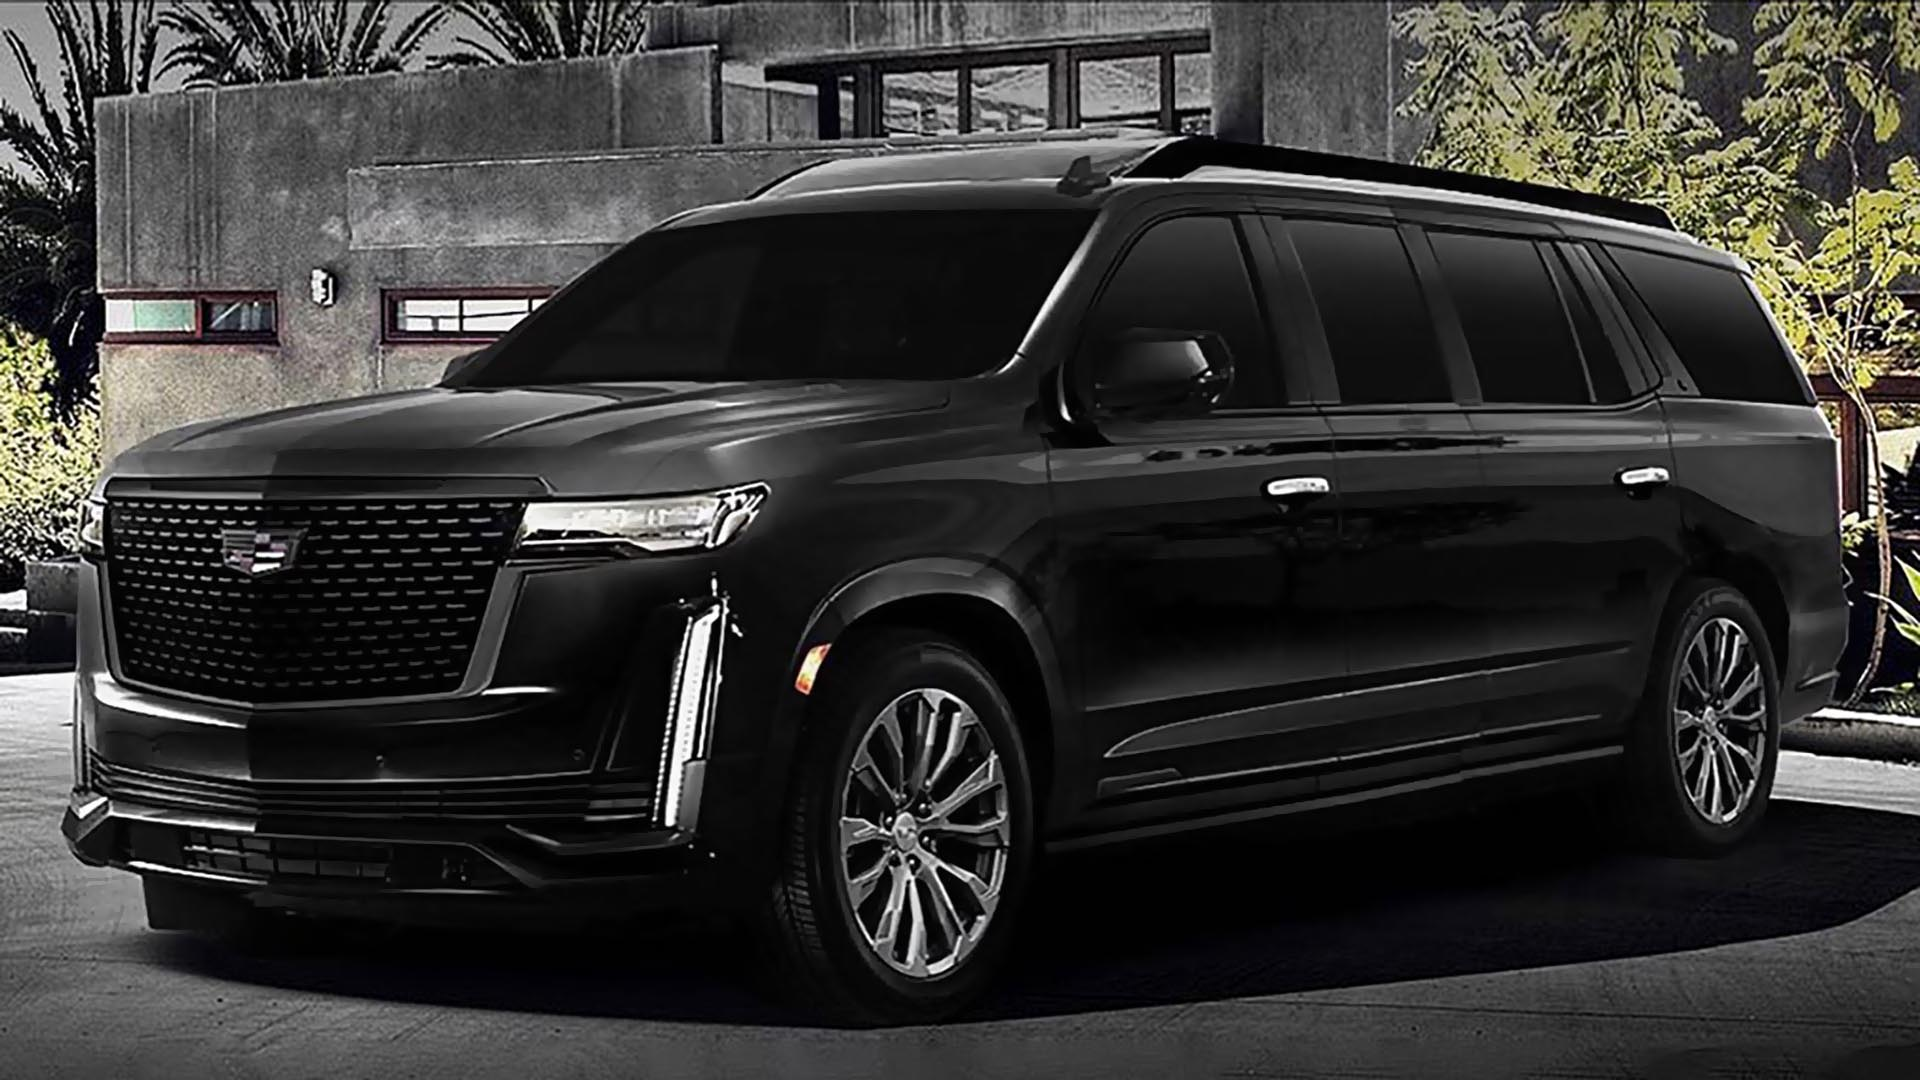 Lexani Motorcars unveils plans for 2021 Escalade Mobile Offices